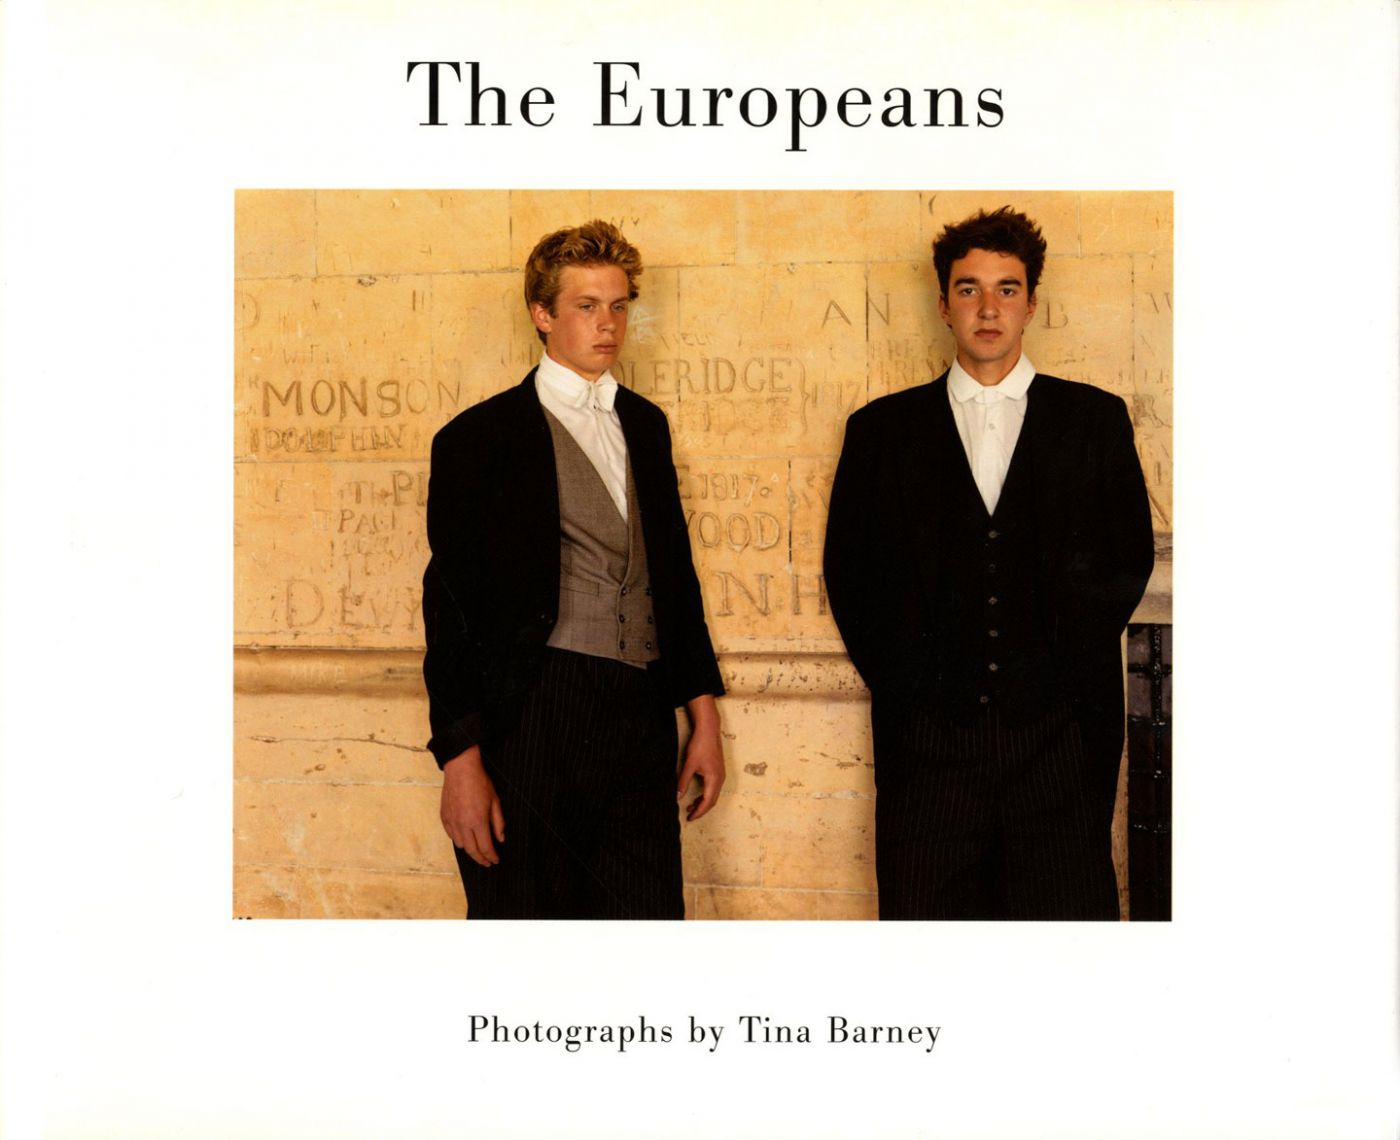 The Europeans: Photographs by Tina Barney